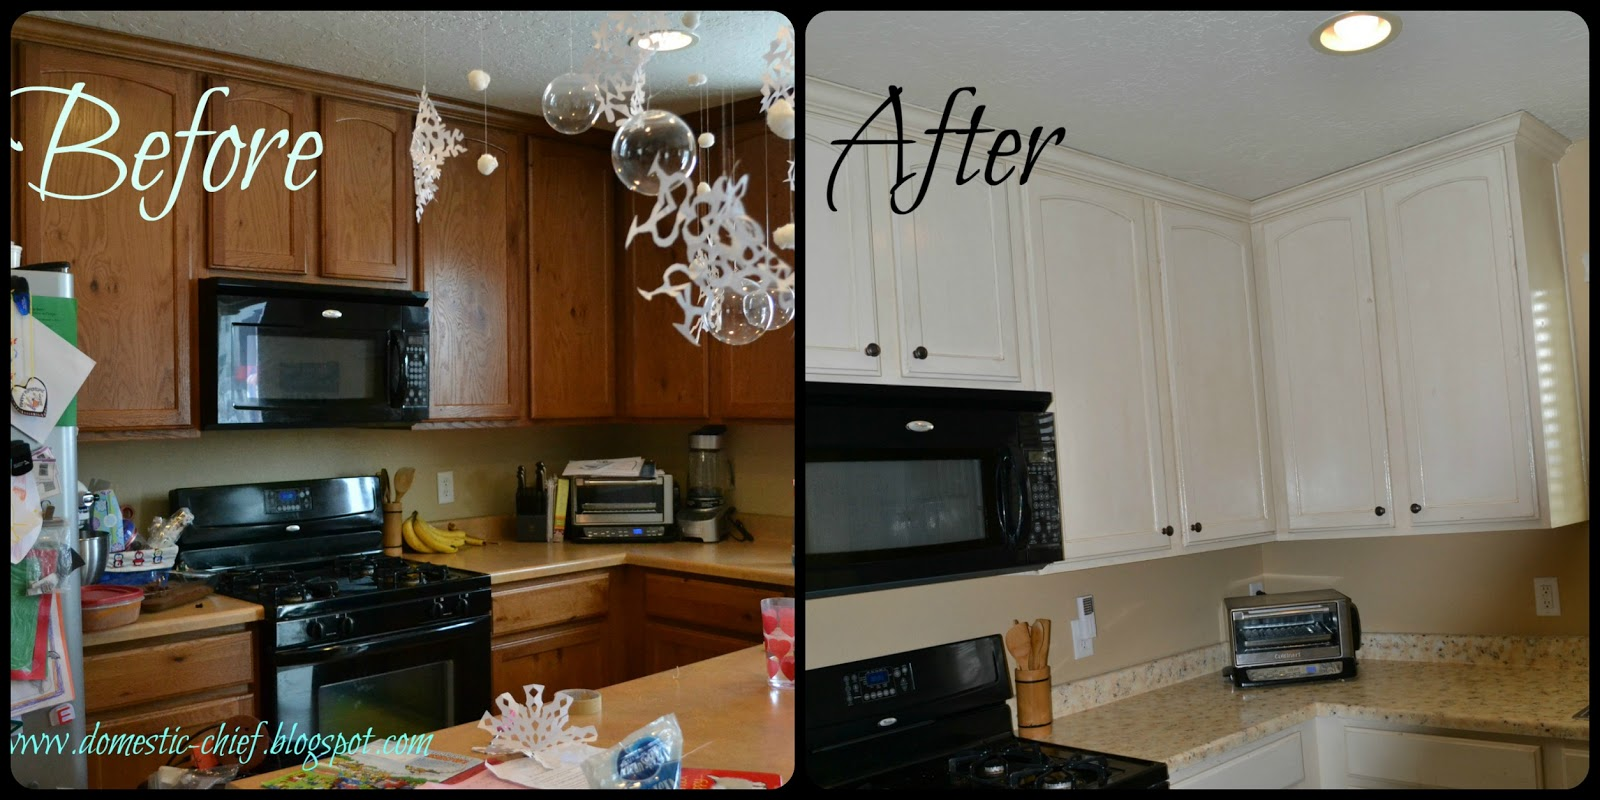 Chief Domestic Officer Kitchen Cabinet Makeover